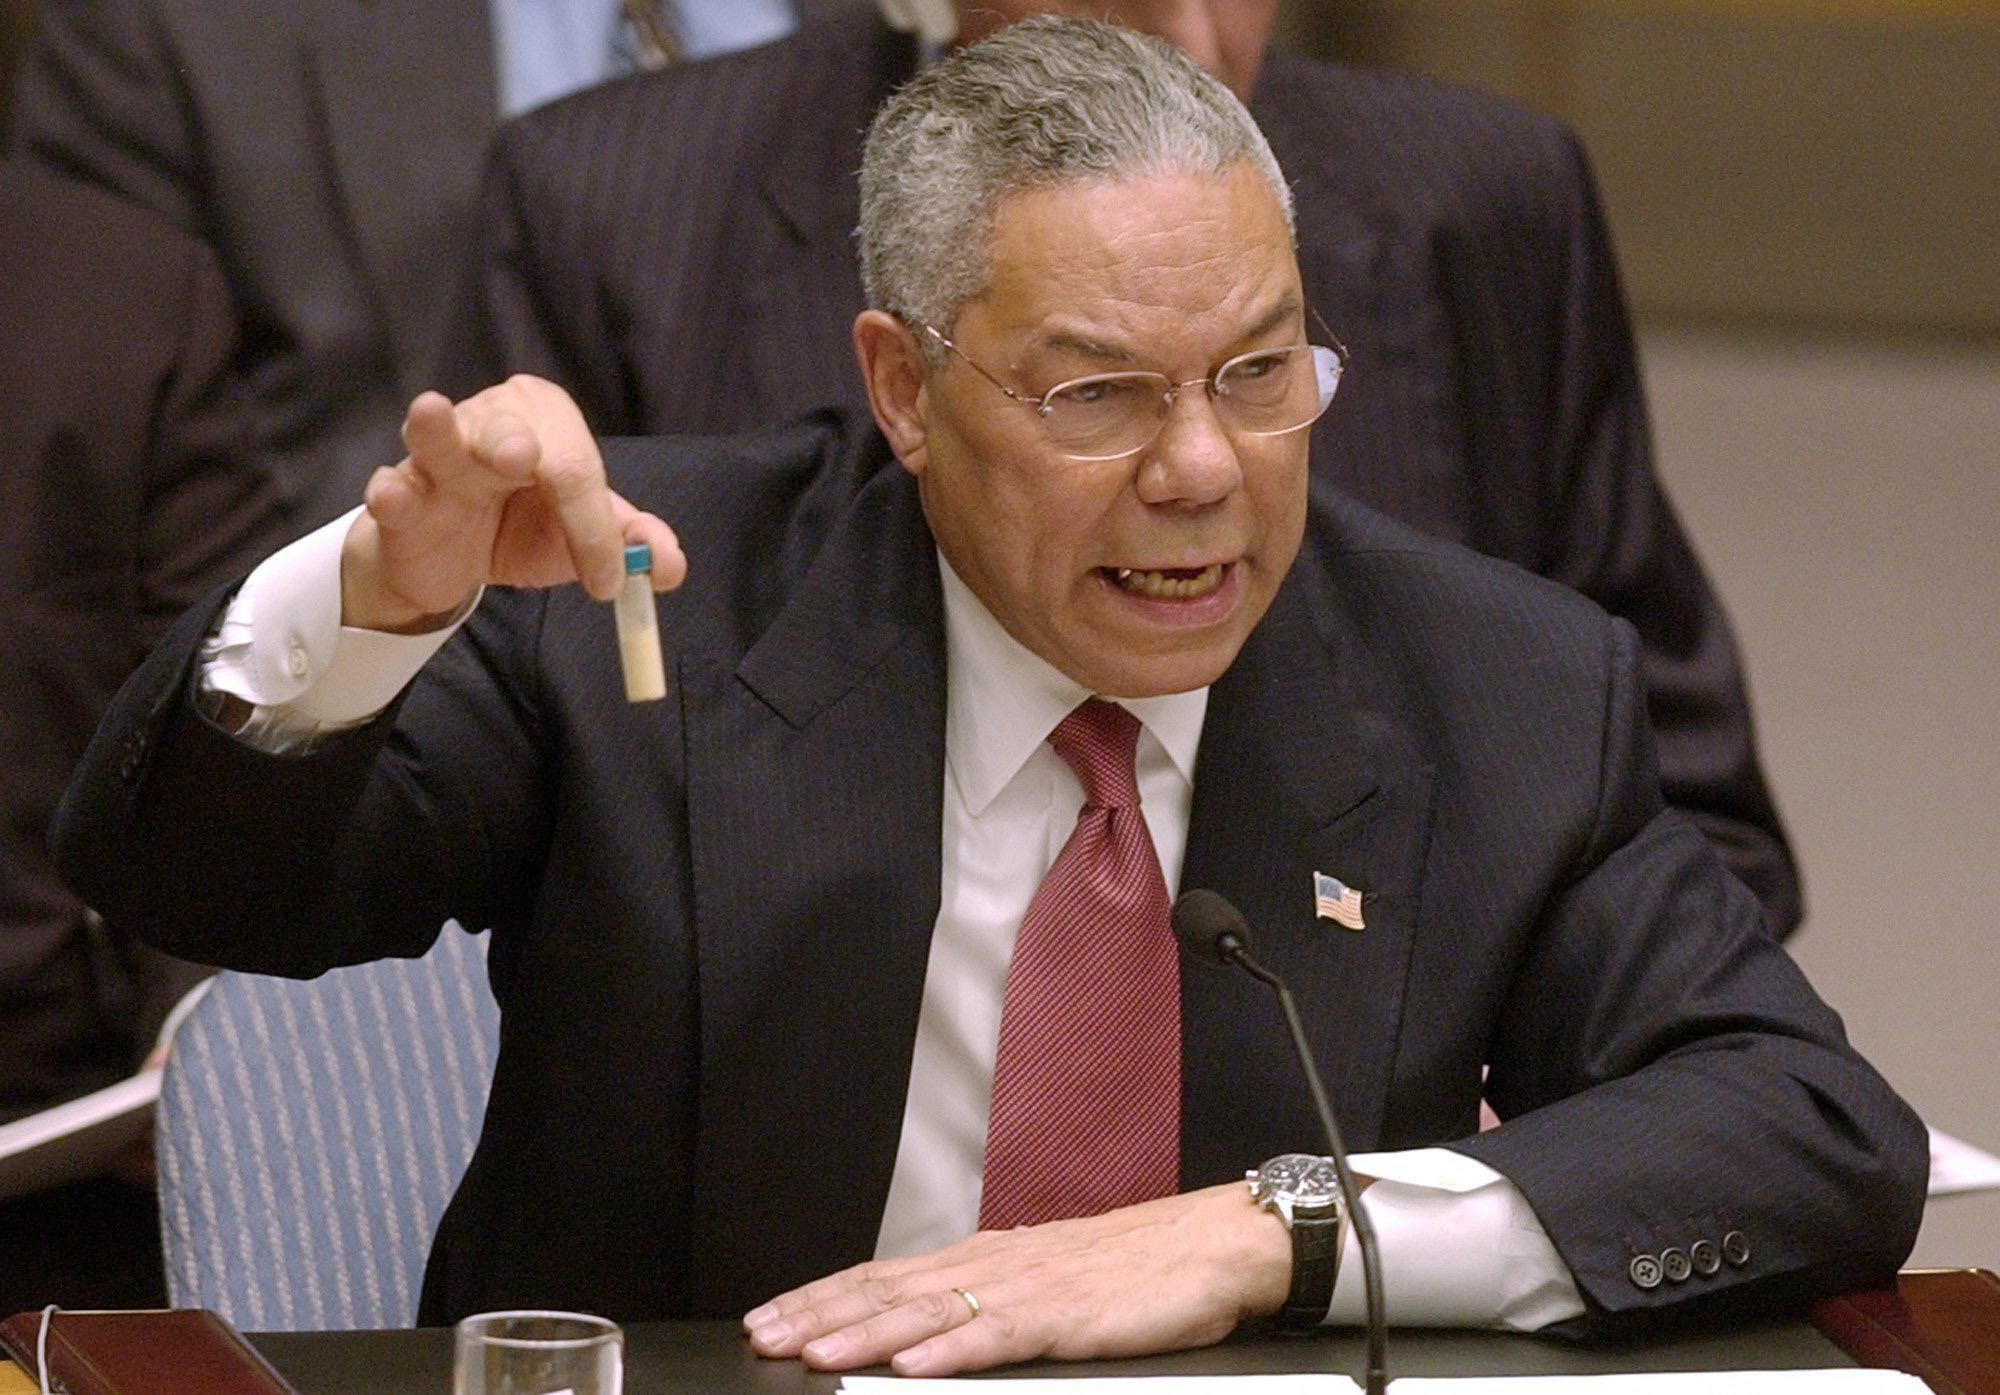 FILE - Secretary of State Colin Powell holds up a vial he said could contain anthrax as he presents evidence of Iraq's alleged weapons programs to the United Nations Security Council in this Feb. 5, 2003 file photo. Israeli Prime Minister Benjamin Netanyahu's use of a cartoon-like drawing of a bomb to convey a message over Iran's disputed nuclear program this week, follows in a long and storied tradition of leaders and diplomats using props to make their points at the United Nations. (AP Photo/Elise Amendola, File)